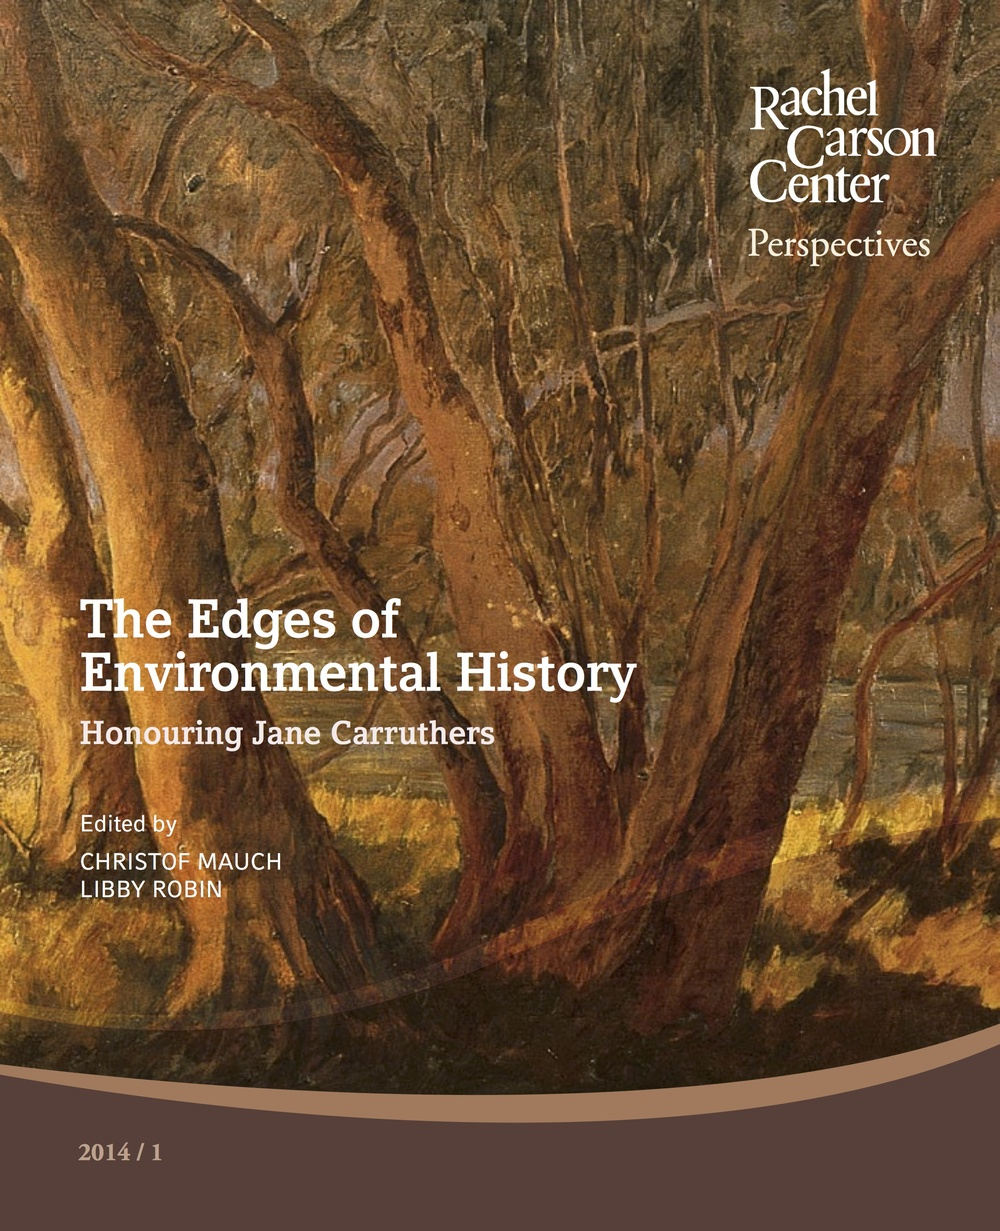 The Edges of Environmental History